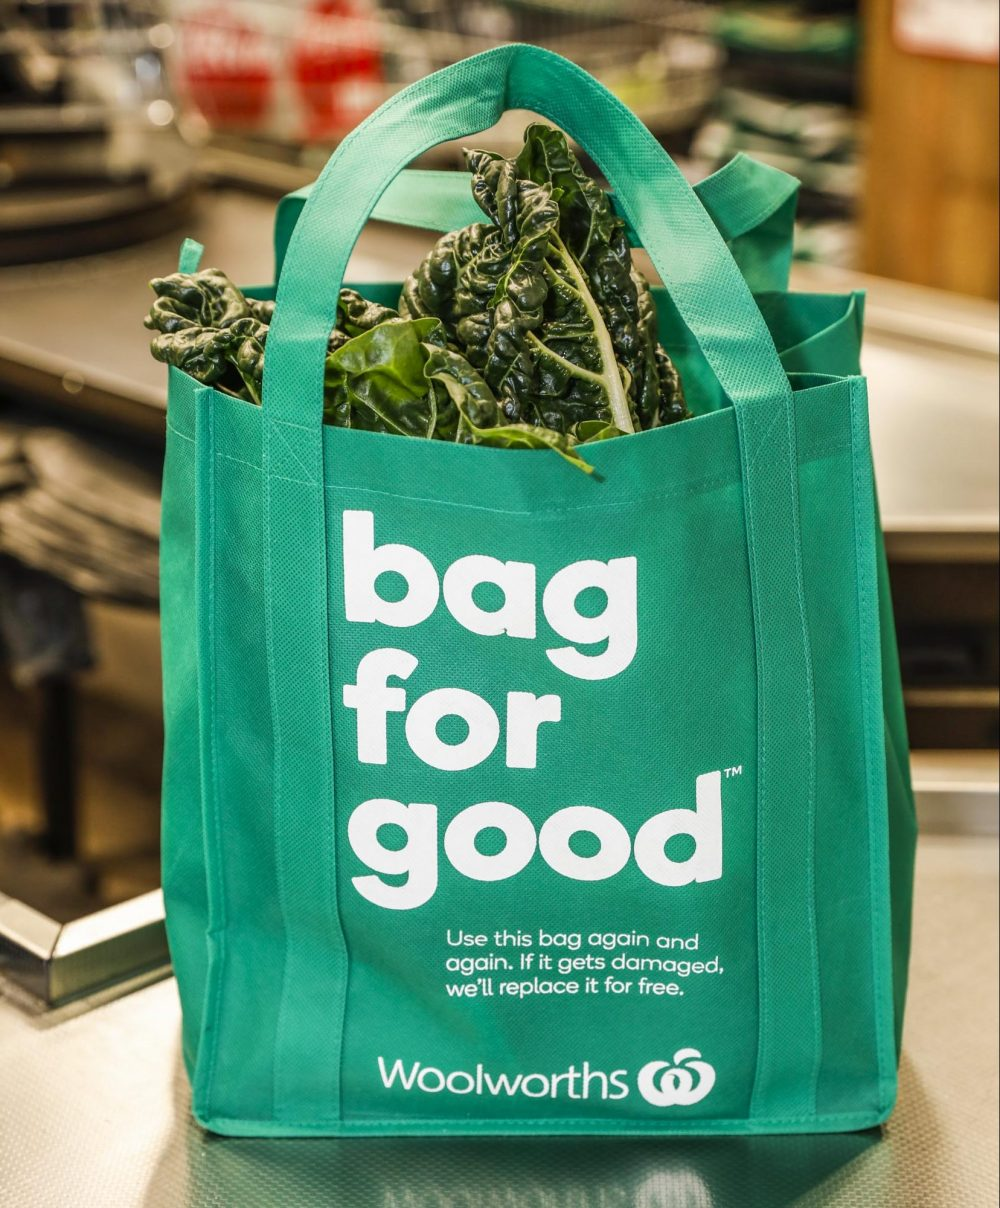 WOOLWORTHS SUPPORT NATIONAL PACKAGING TARGETS